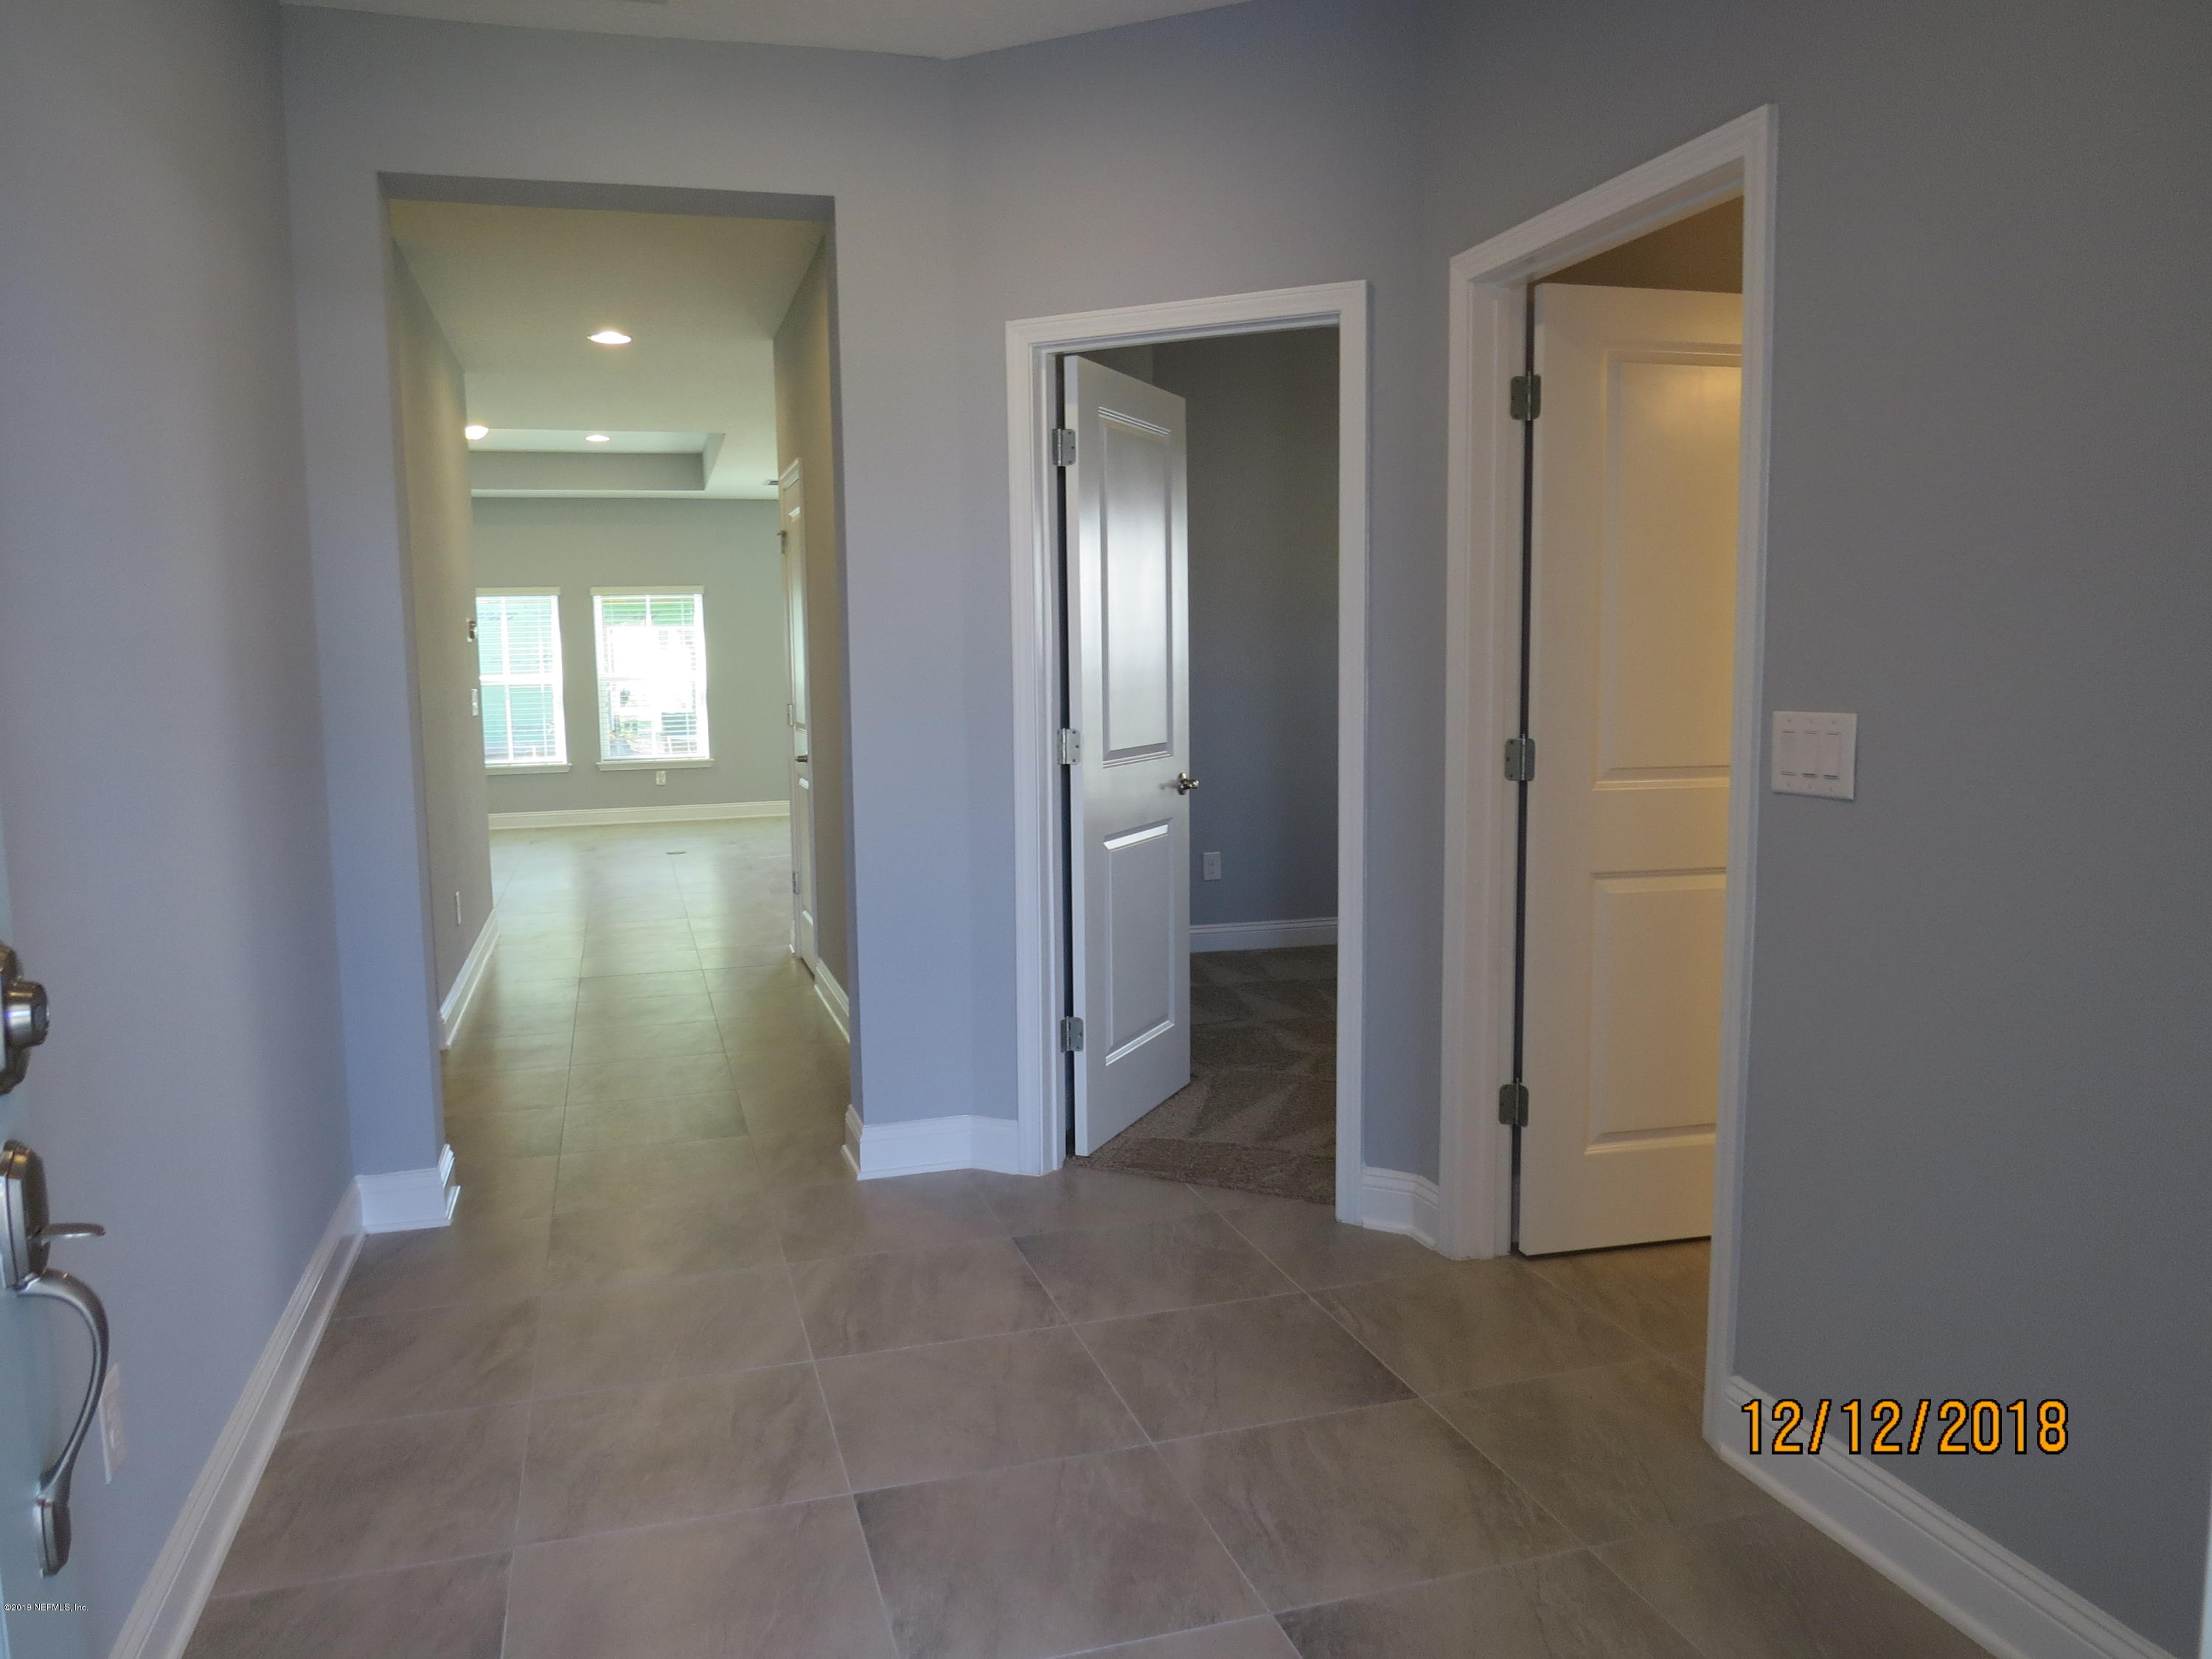 97238 HARBOR CONCOURSE CIR FERNANDINA BEACH - 3